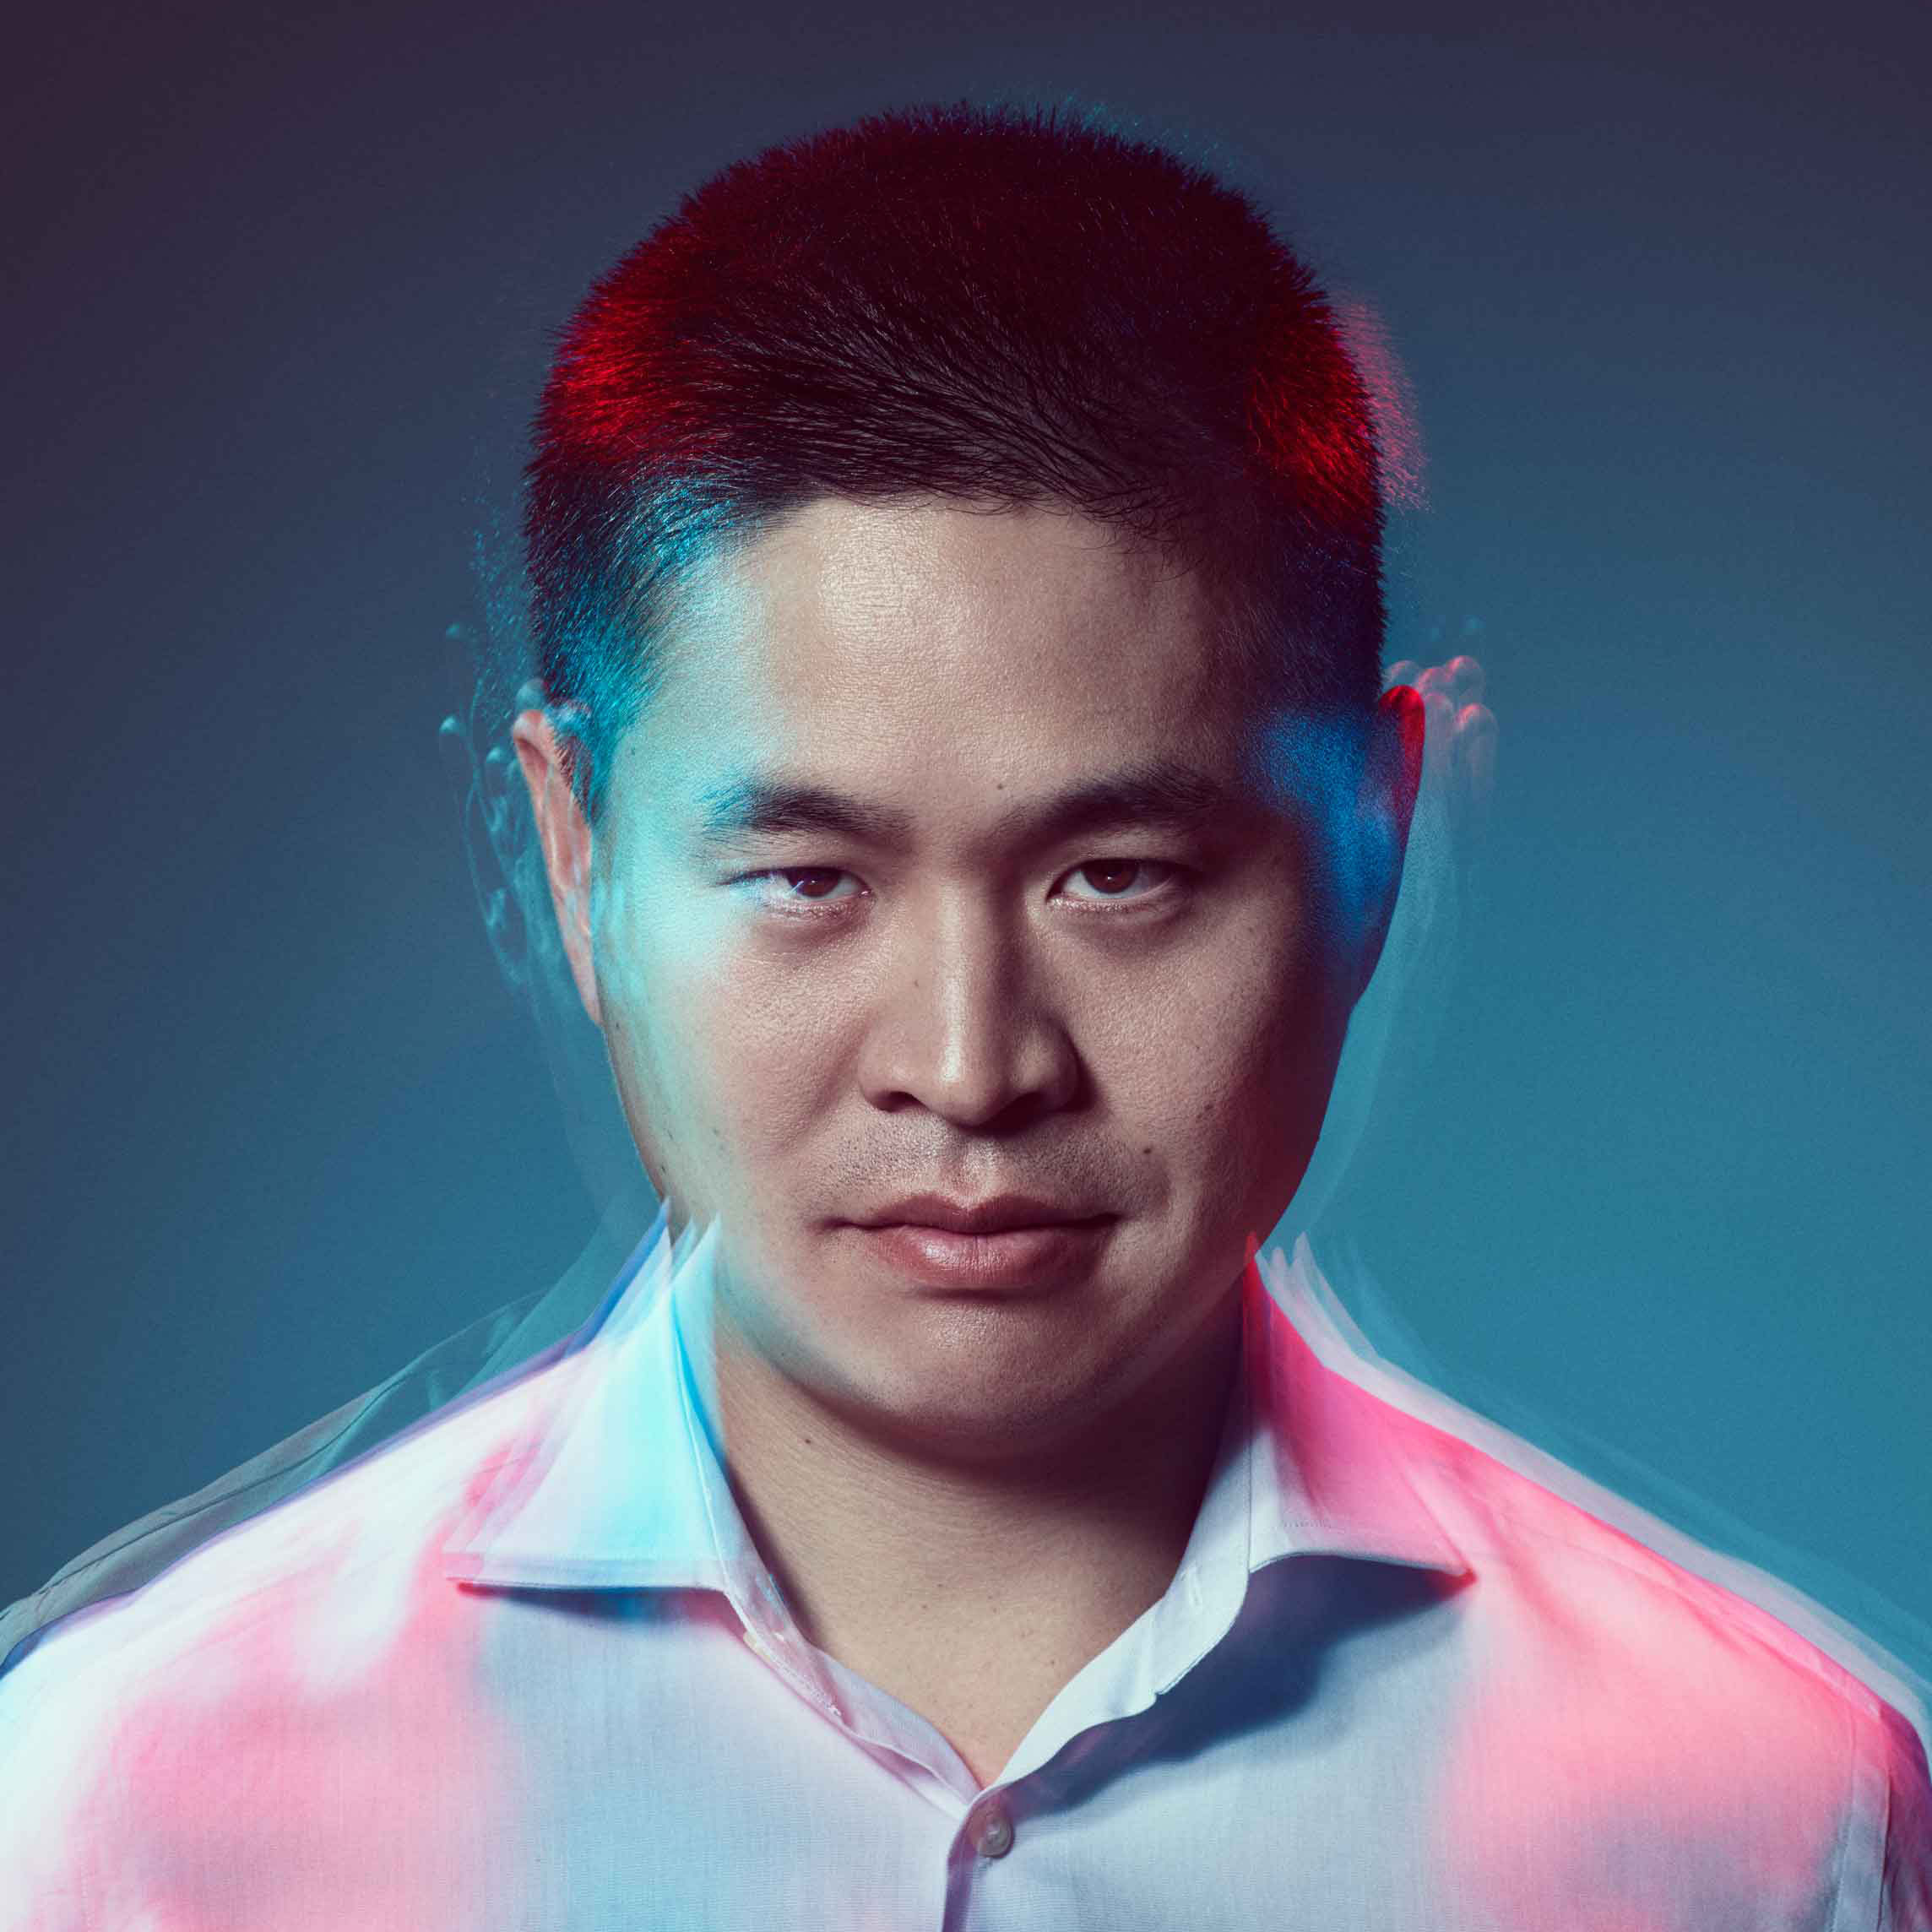 Brad Katsuyama, CEO and co-founder of IEX in New York